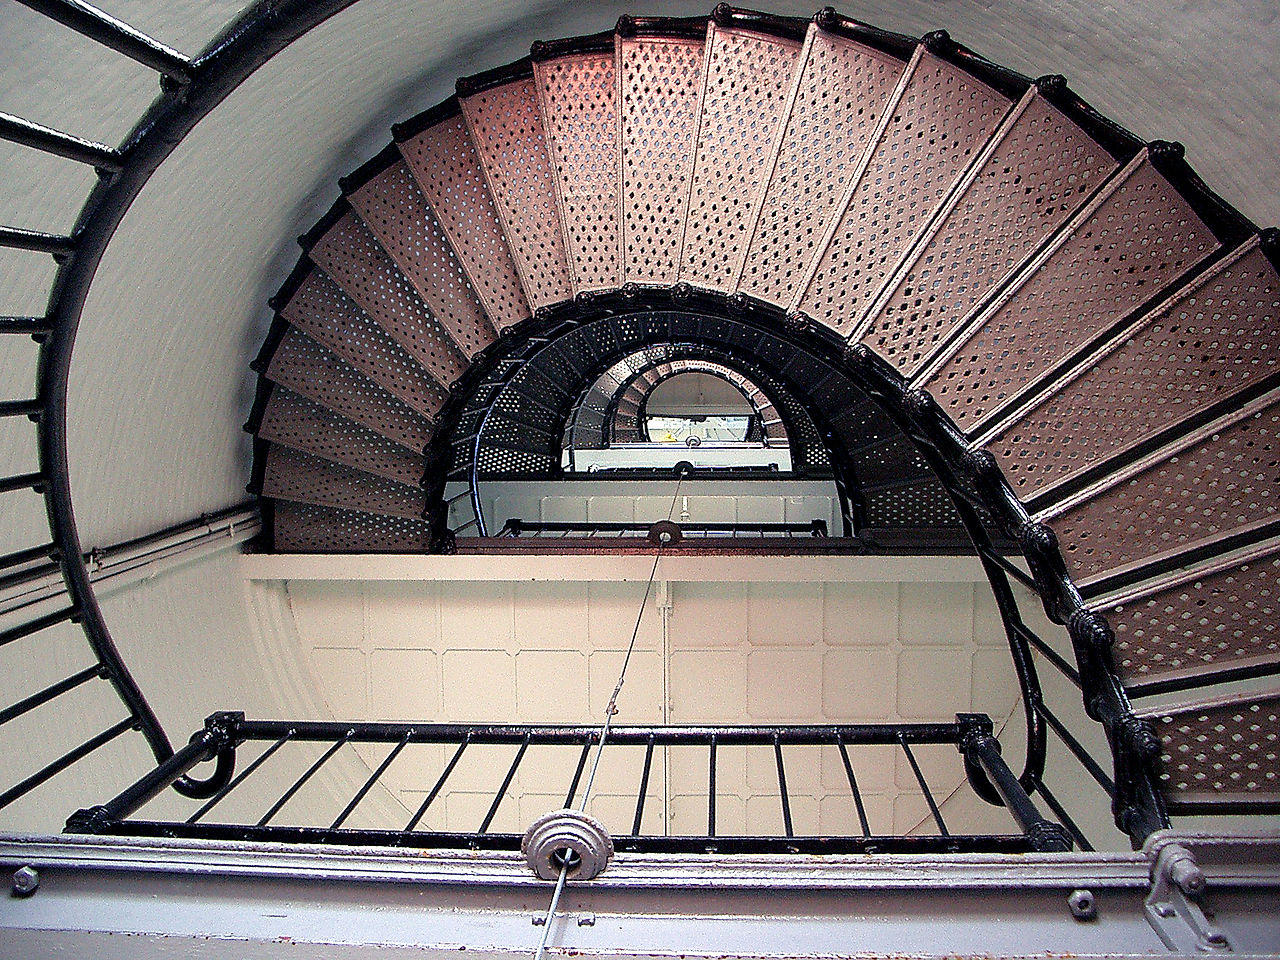 Spiral staircase within the lighthouse.